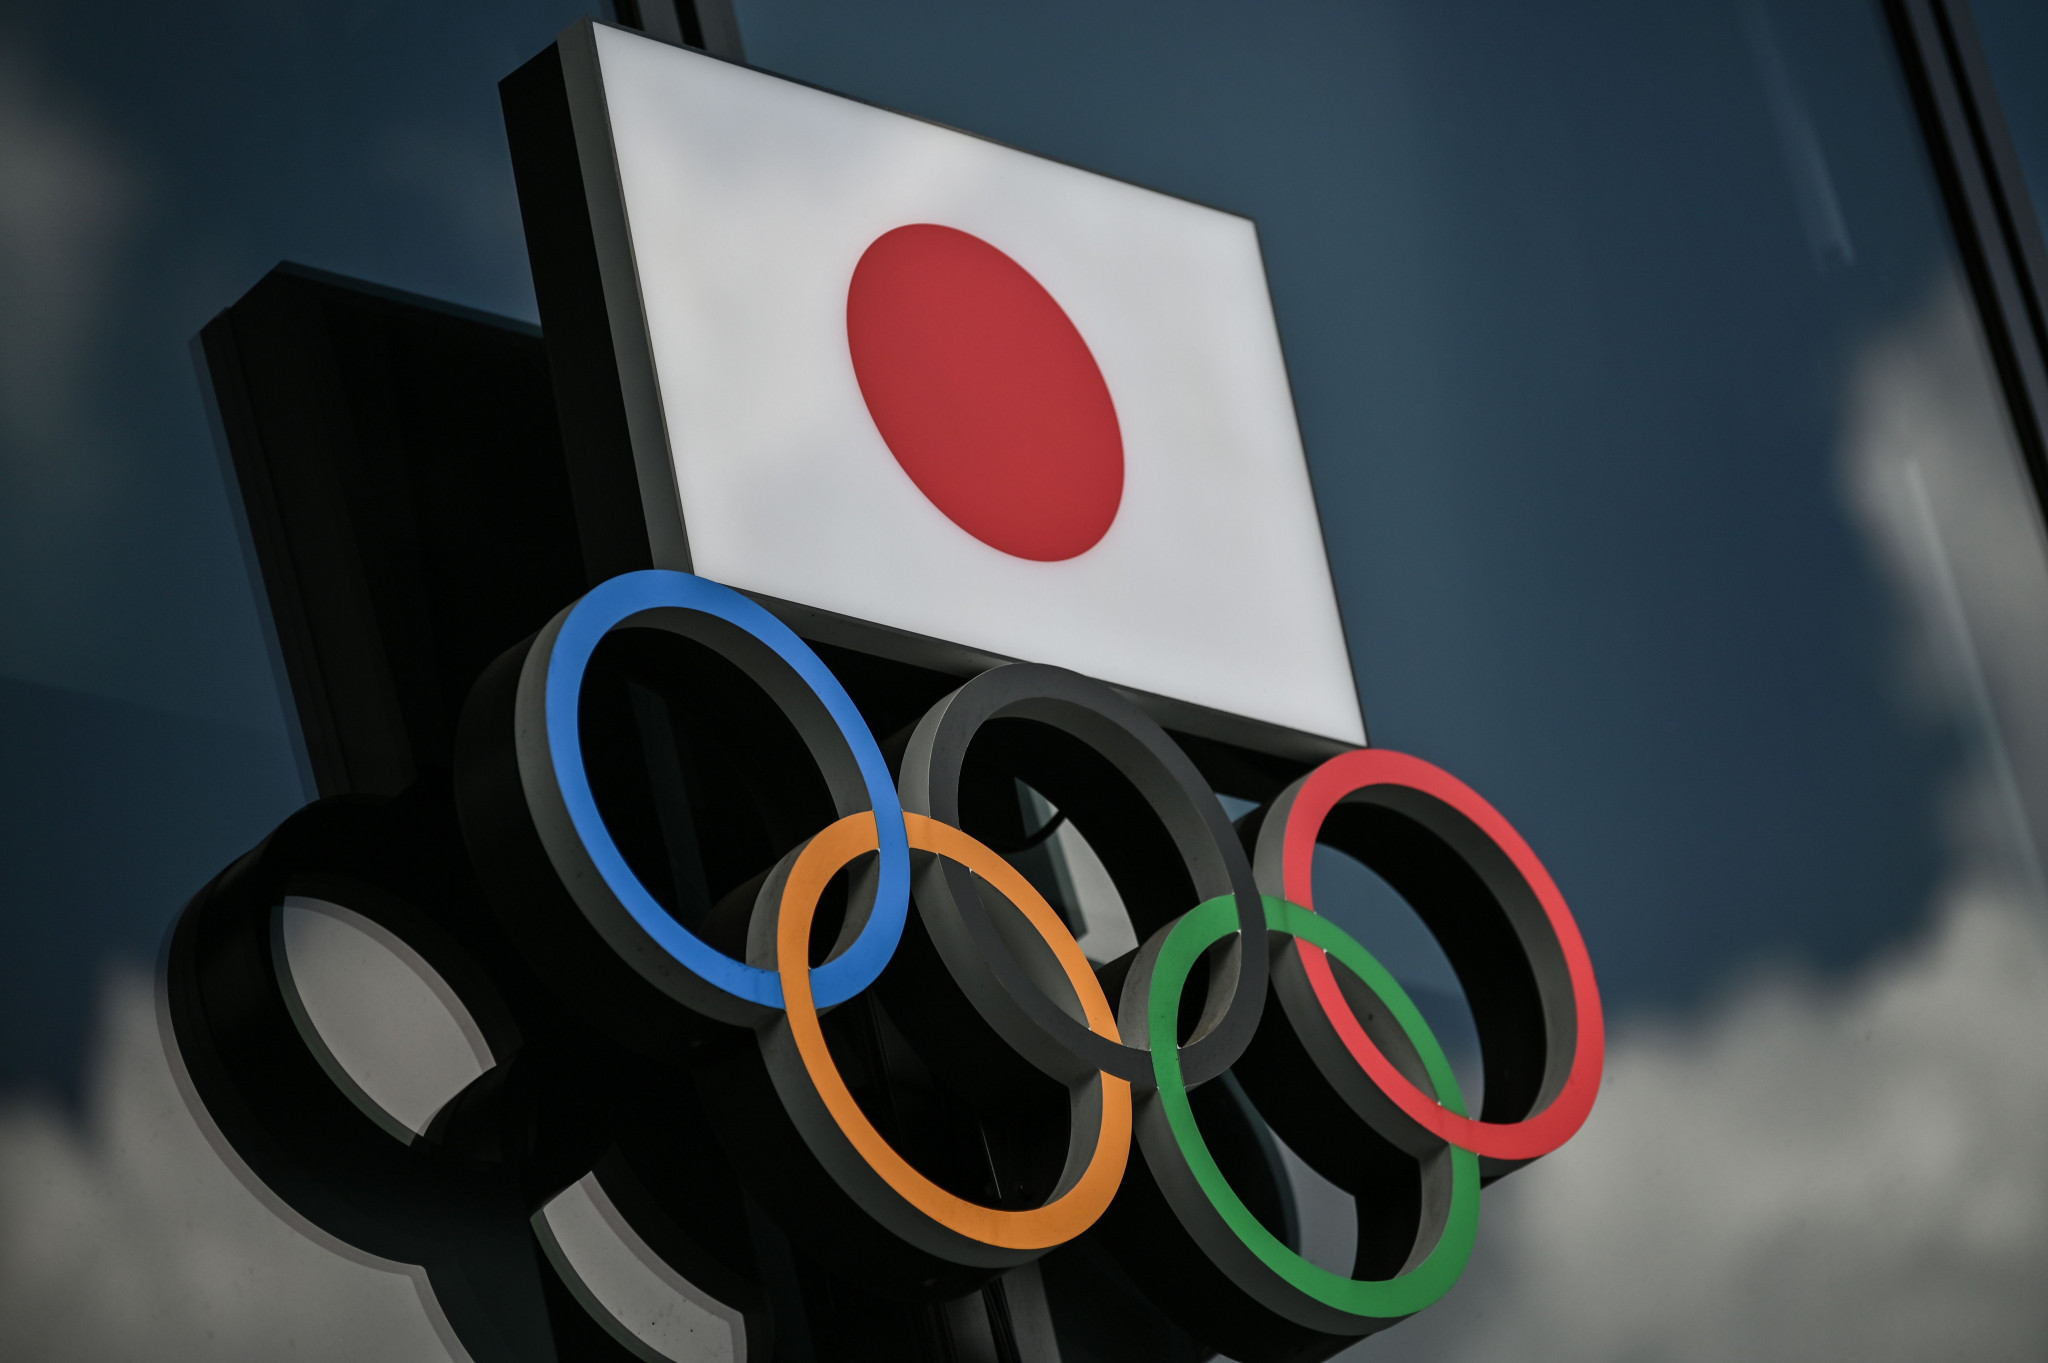 Ethical hackers have been trained to protect Tokyo 2020 from cyber-attacks ©Getty Images